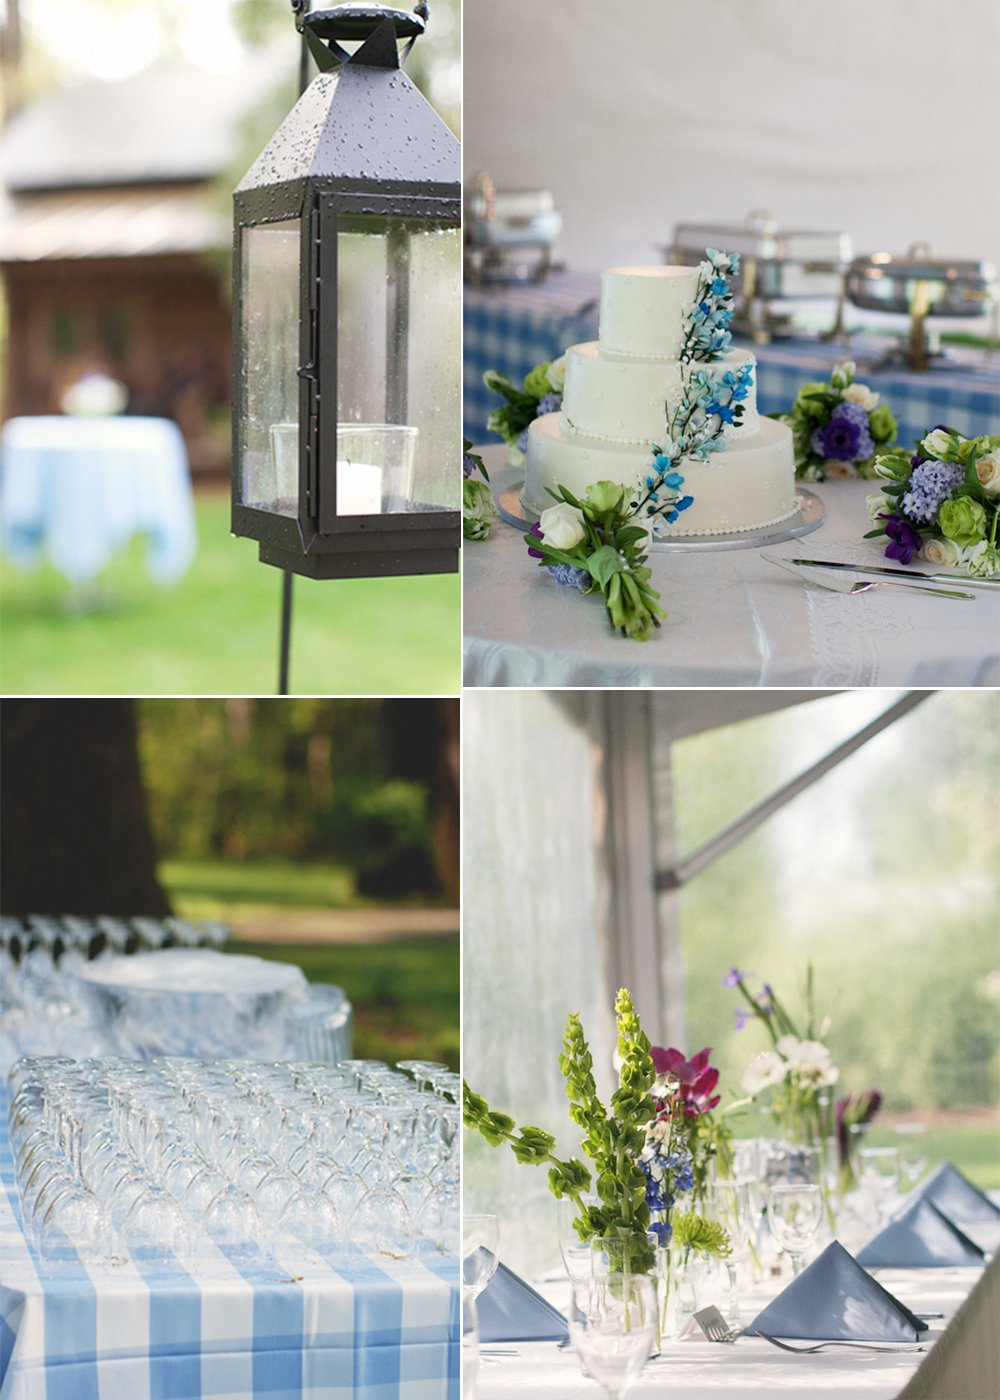 Rustic-outdoor-wedding-light-blue-lilac-wedding-reception-color-palette-decor-flower-centerpieces.full